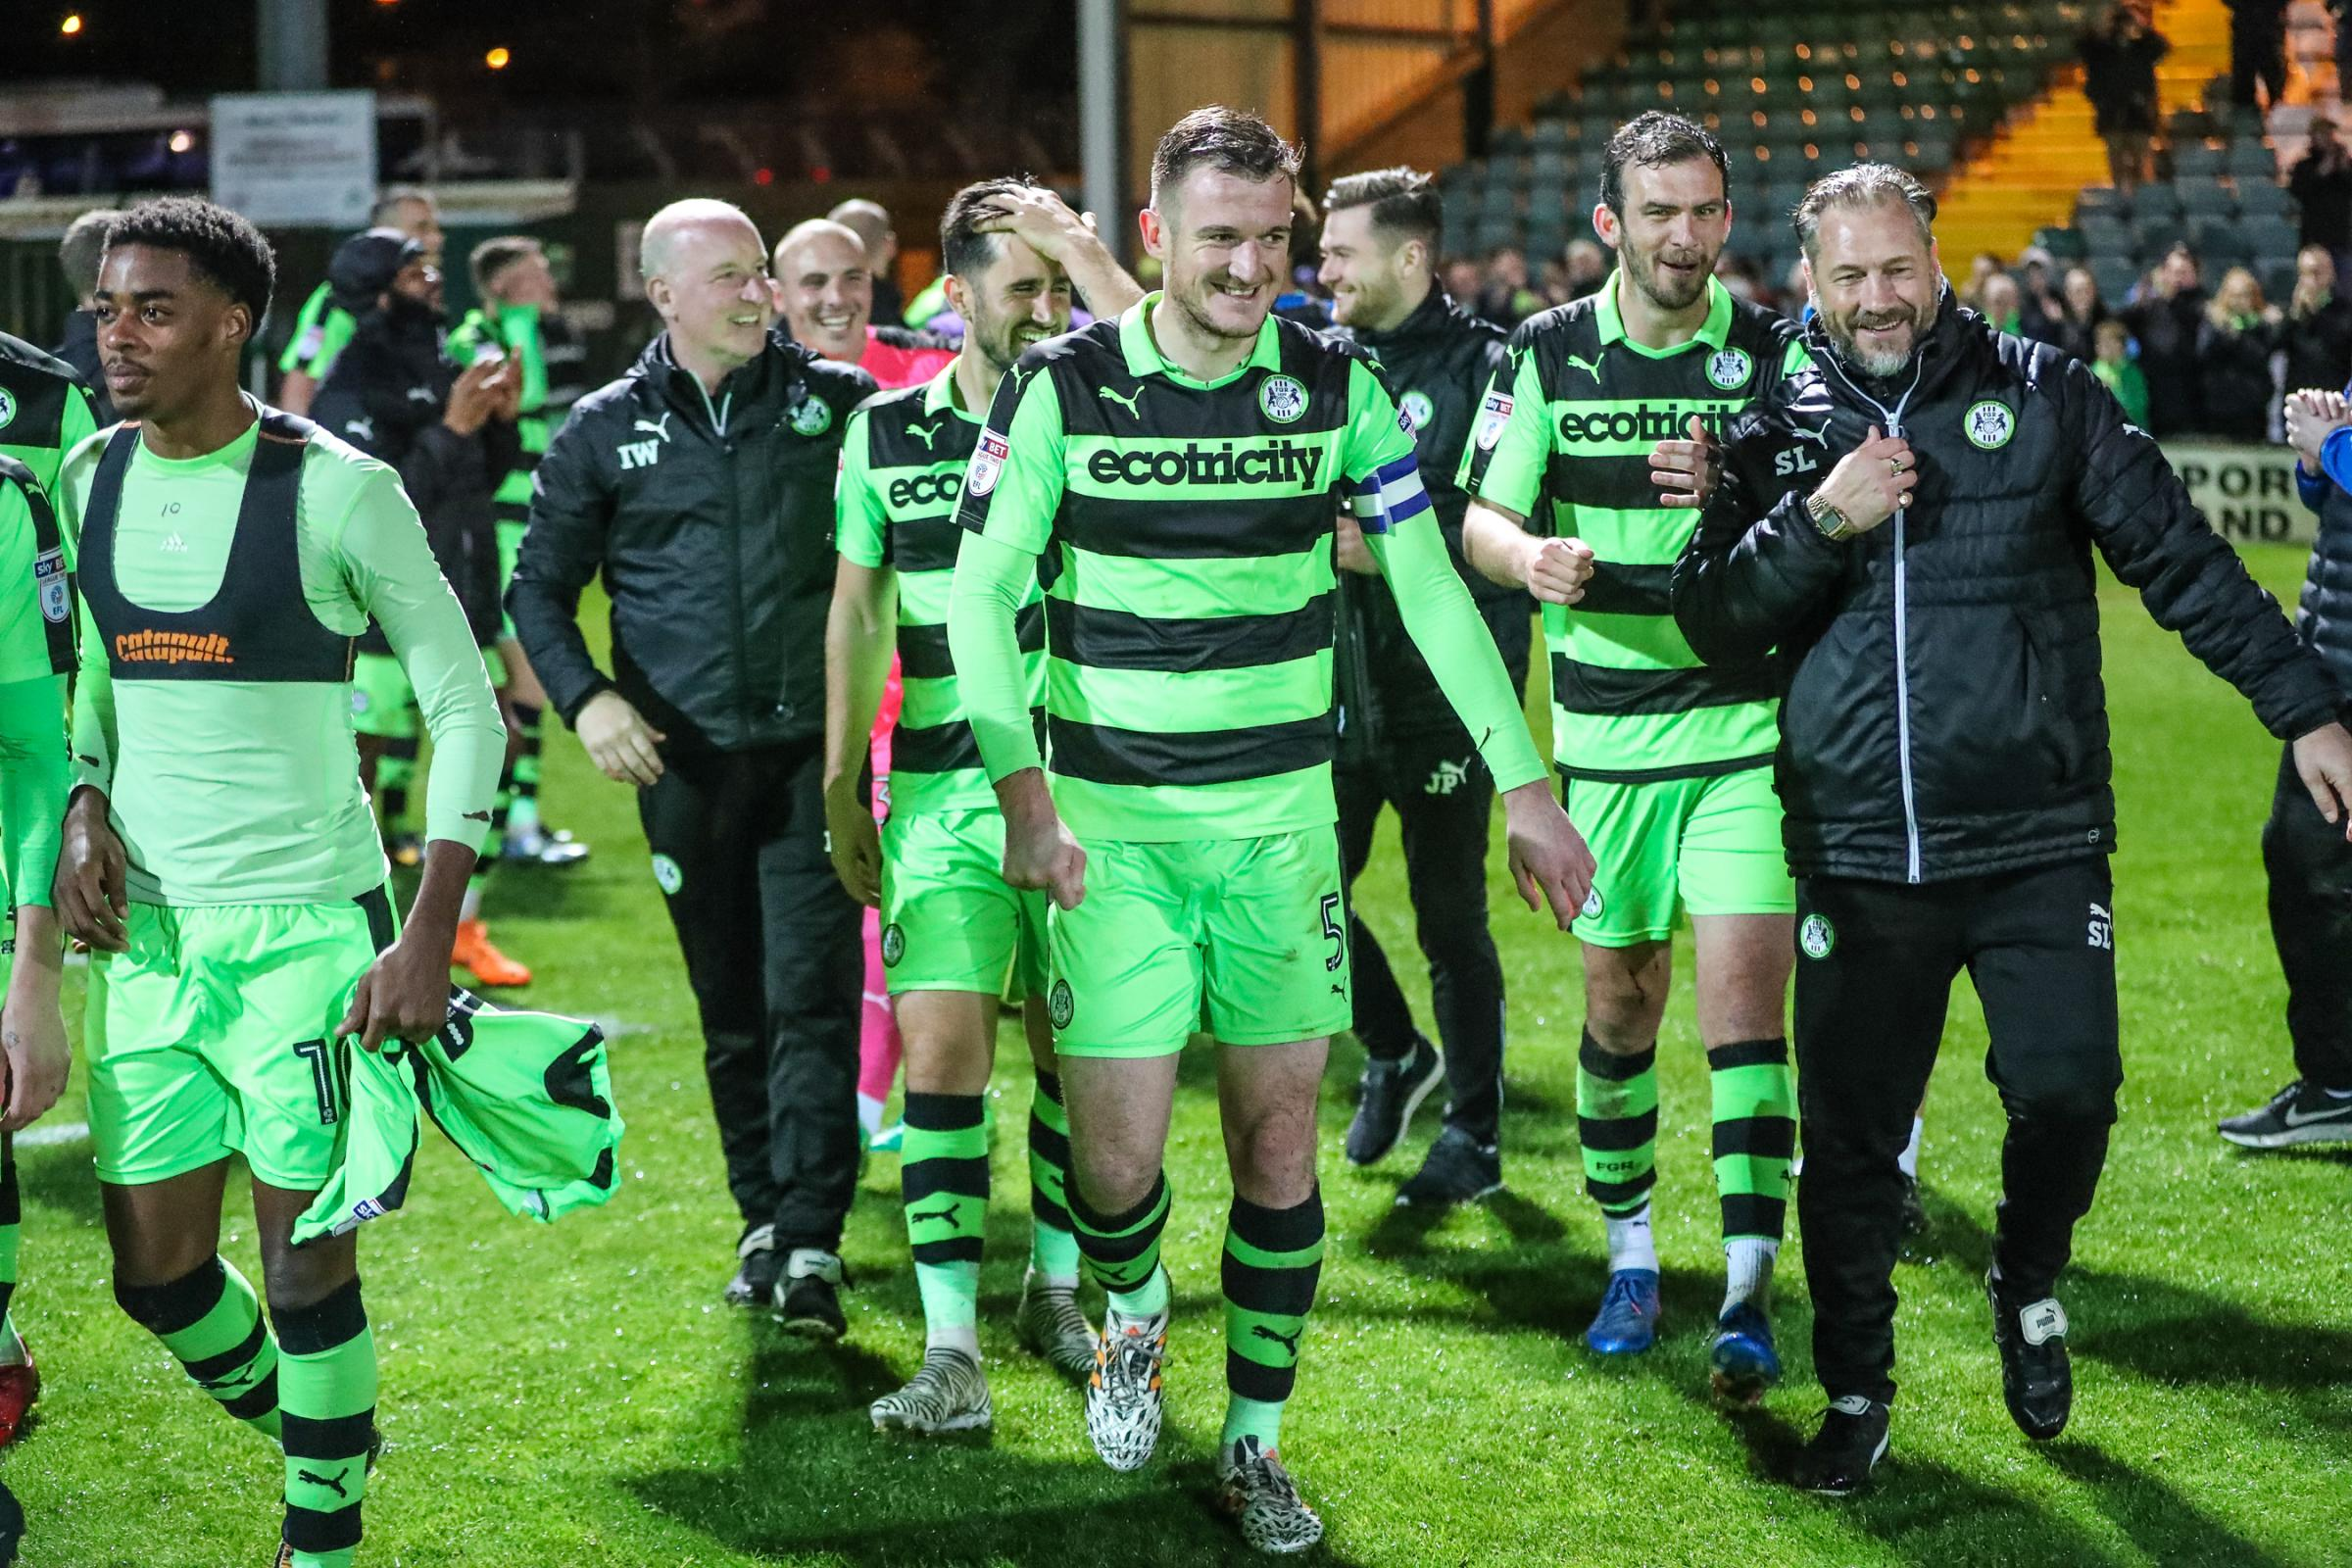 FGR celebrate survival    Pic: Shane Healey/ Pro Sports Images